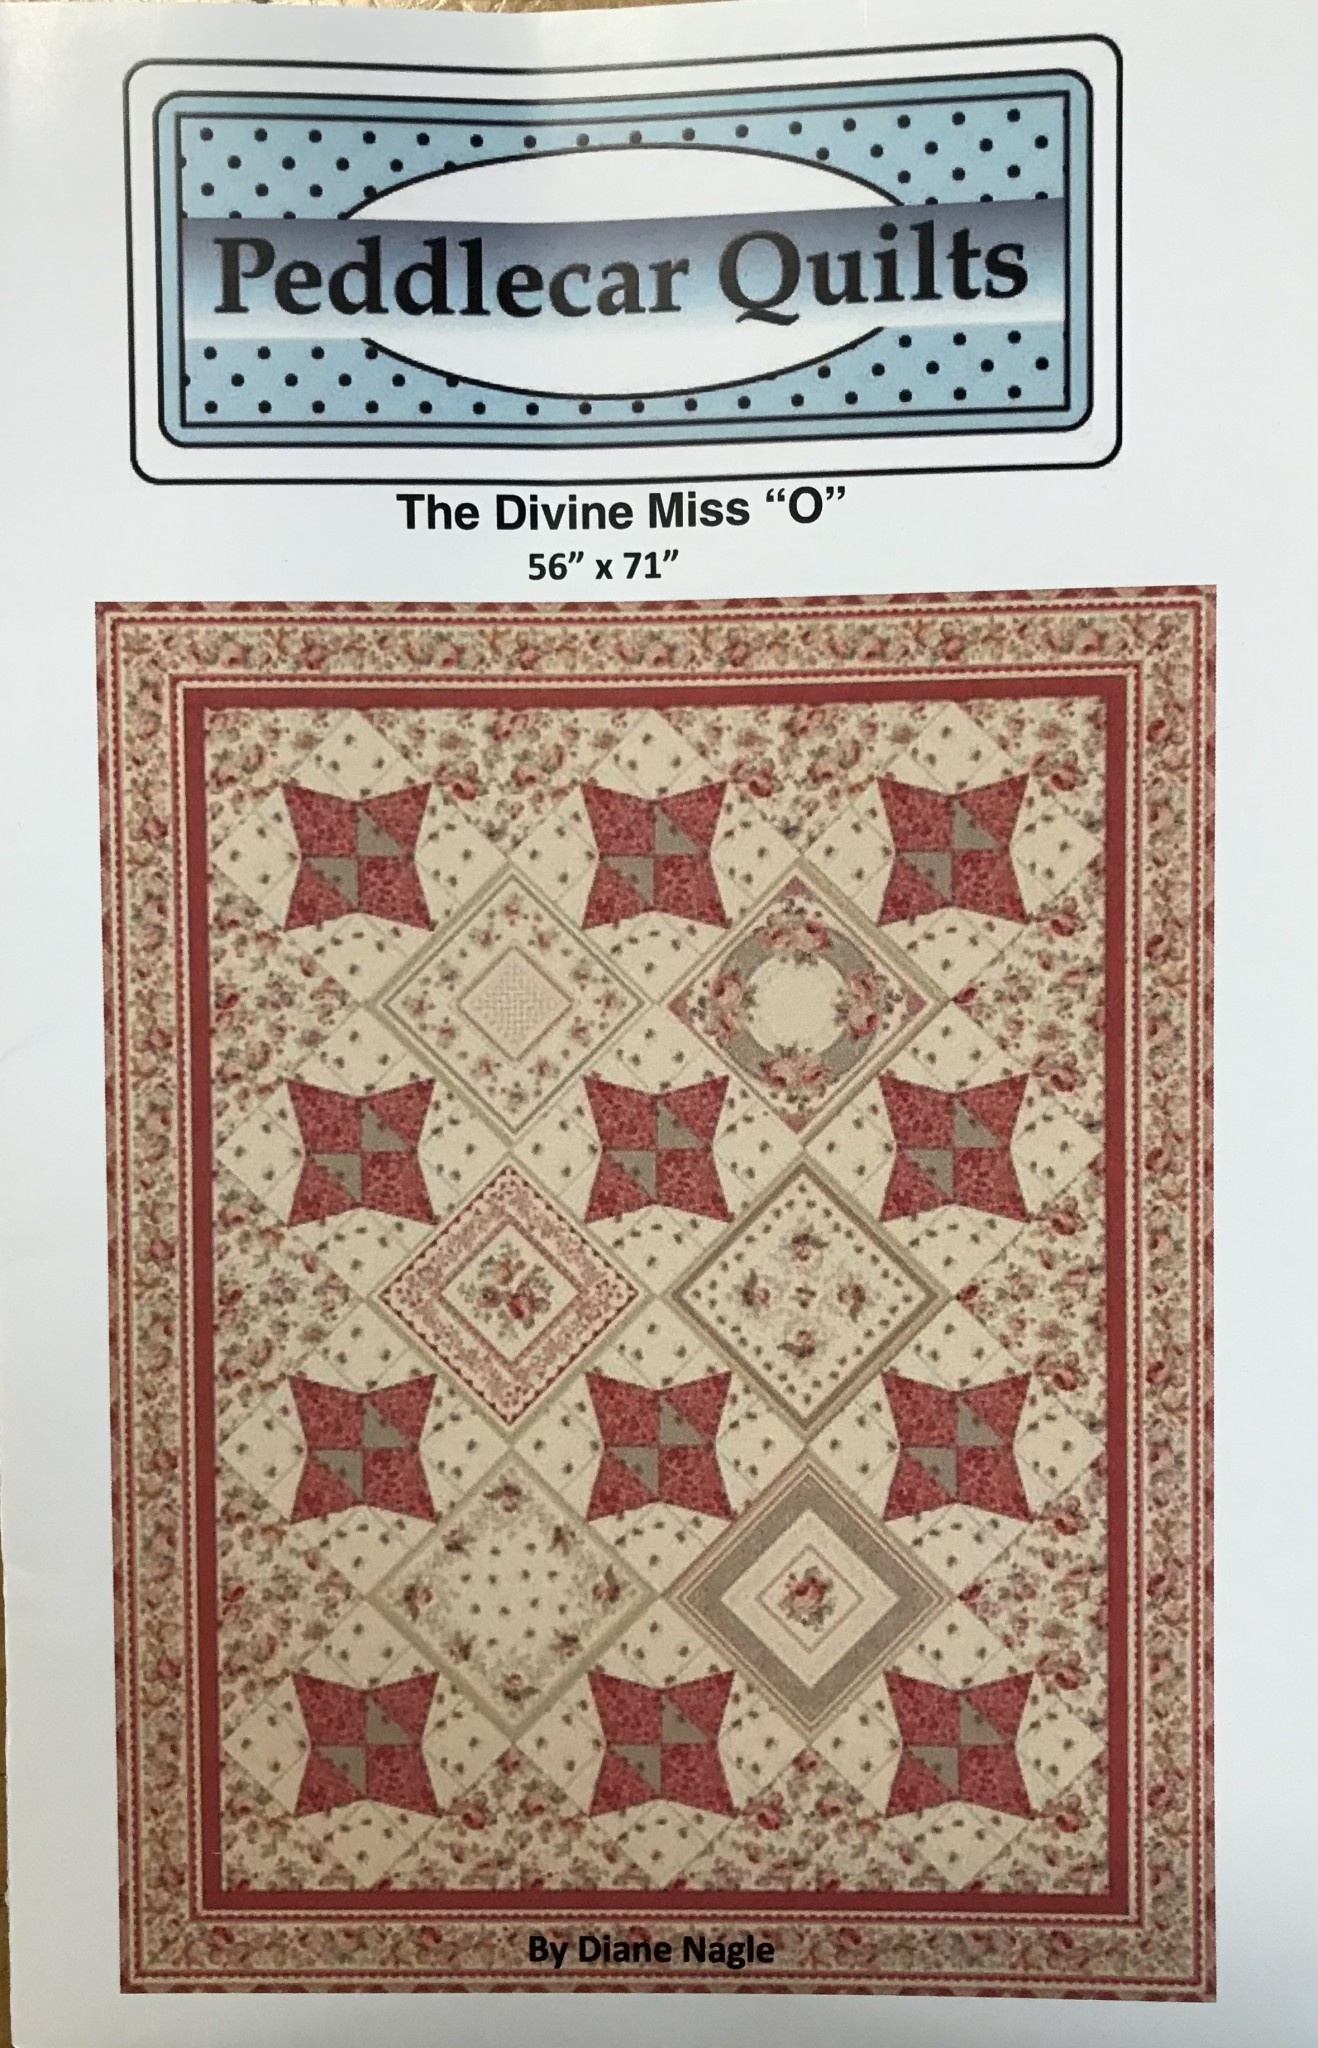 "PEDDLE CAR QUILTS DIVINE MISS ""O"" PATTERN"